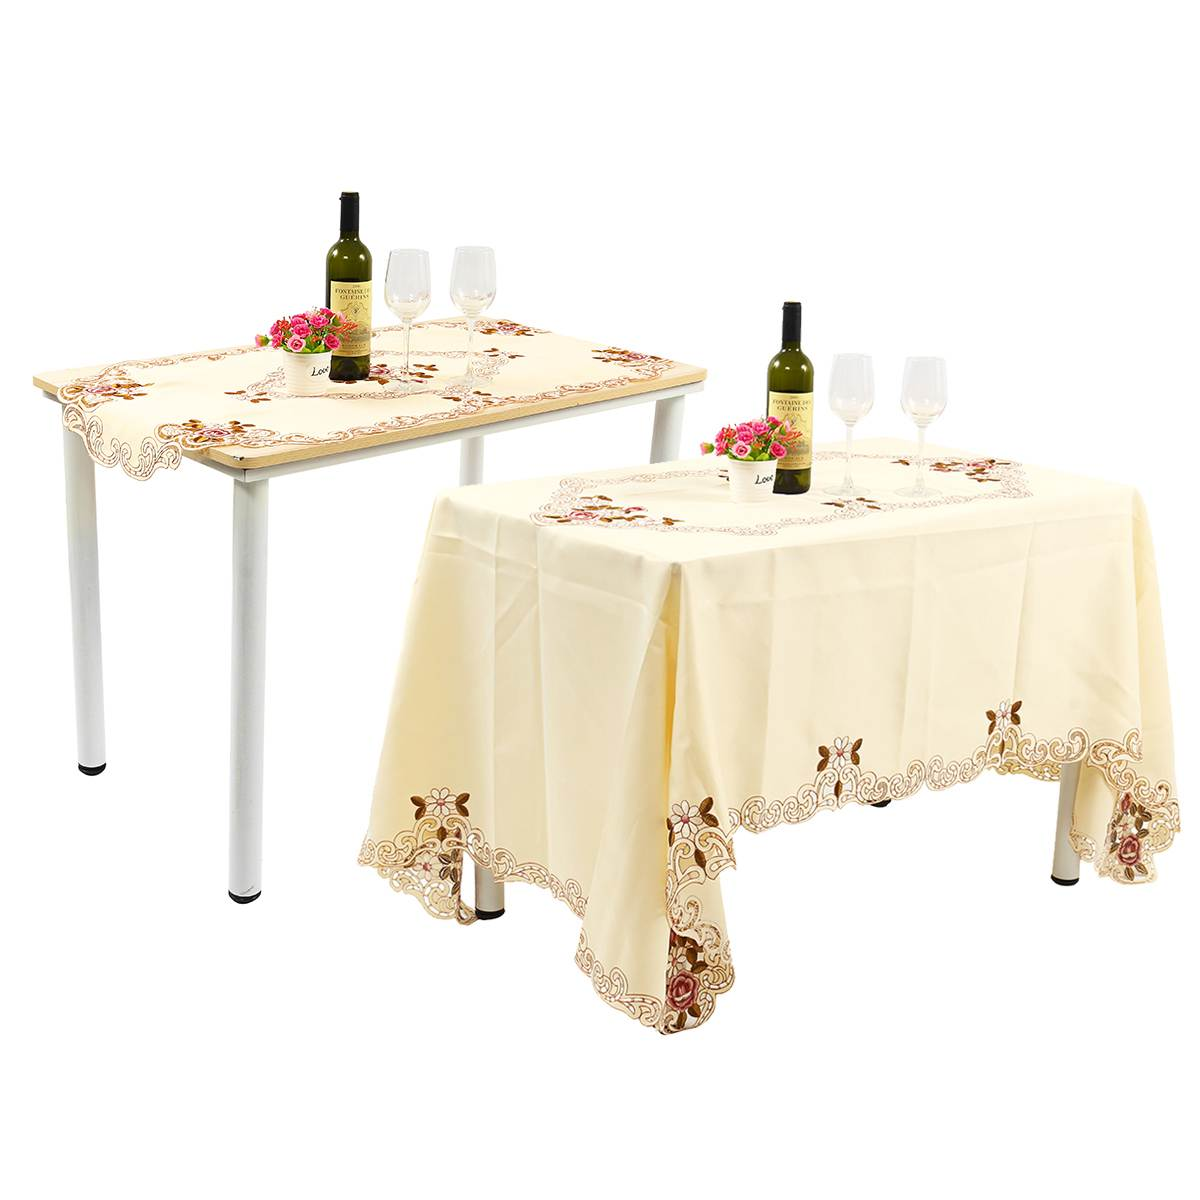 Us 816 52 Offfabric Rectangular European Pastoral Embroidered Table Cloth Table Flag Garden Tablecloth Table Towel Coffee Table Runner Cover In